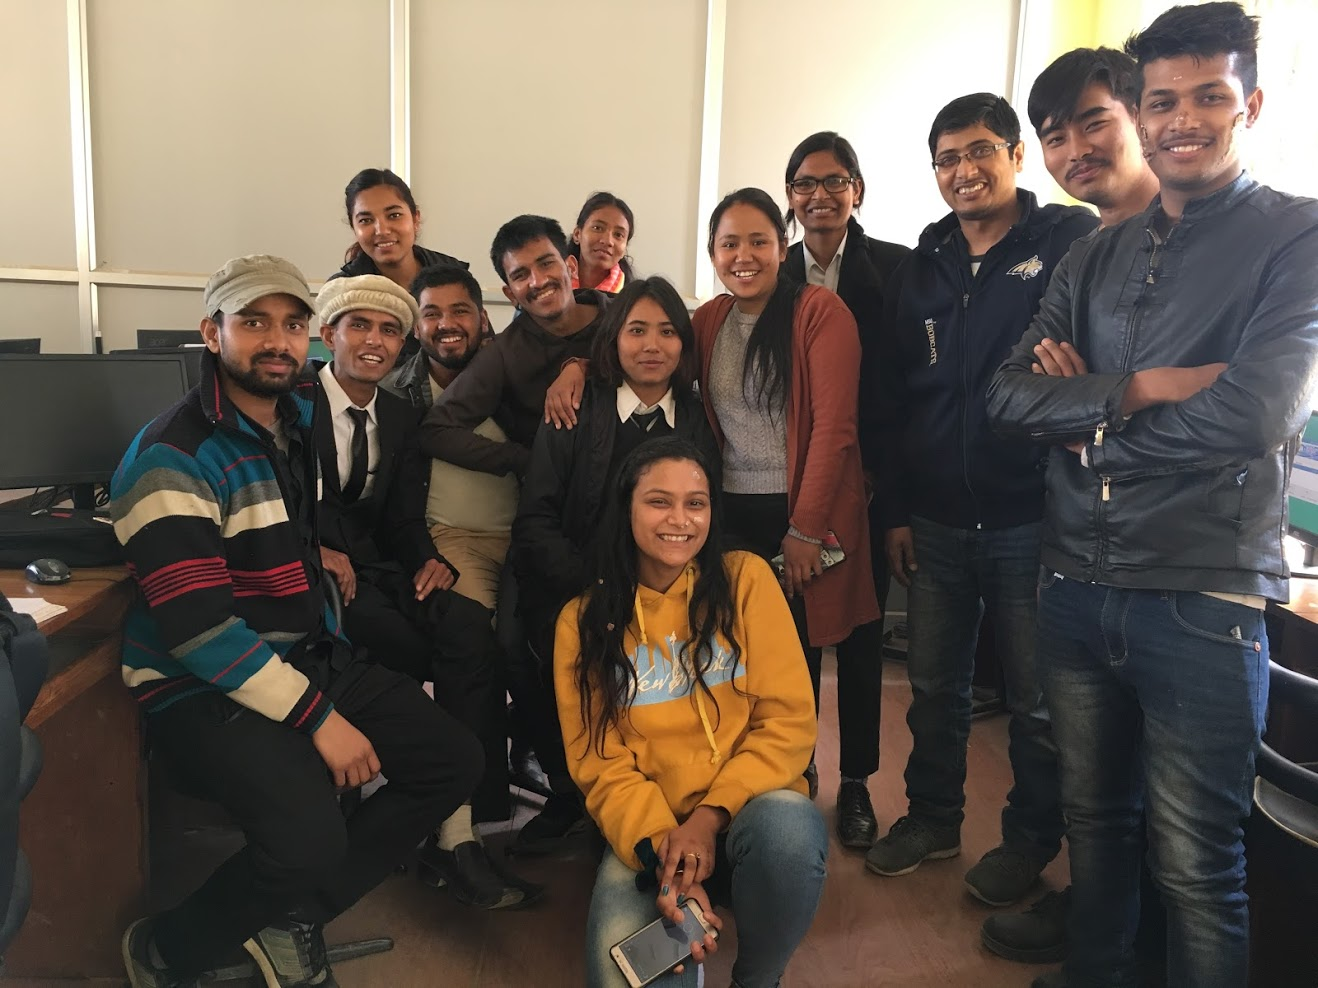 Central Department of PUblic Administration (CDPA), Faculty of Management (FoM), Tribhuvan University (TU), Public Administration Campus (PAC), Master of Public Administration (MPA), Bachelor of Public Administration (BPA) students in computer class